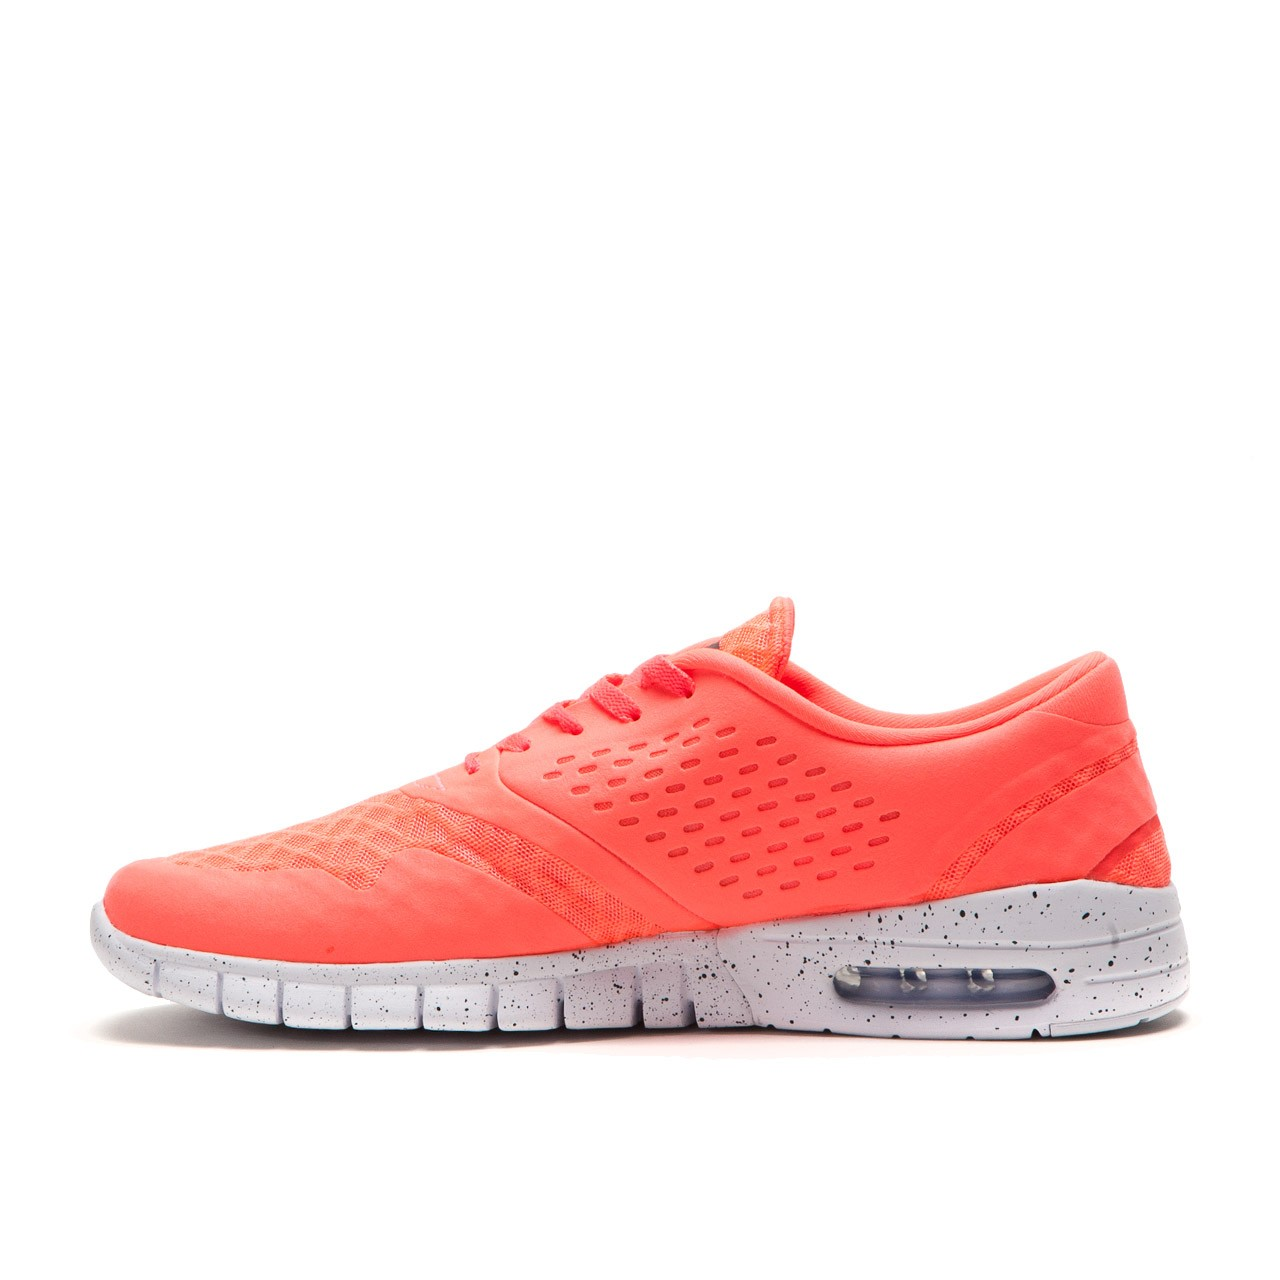 nike-sb-eric-koston-2-max-hot-lava-white-1